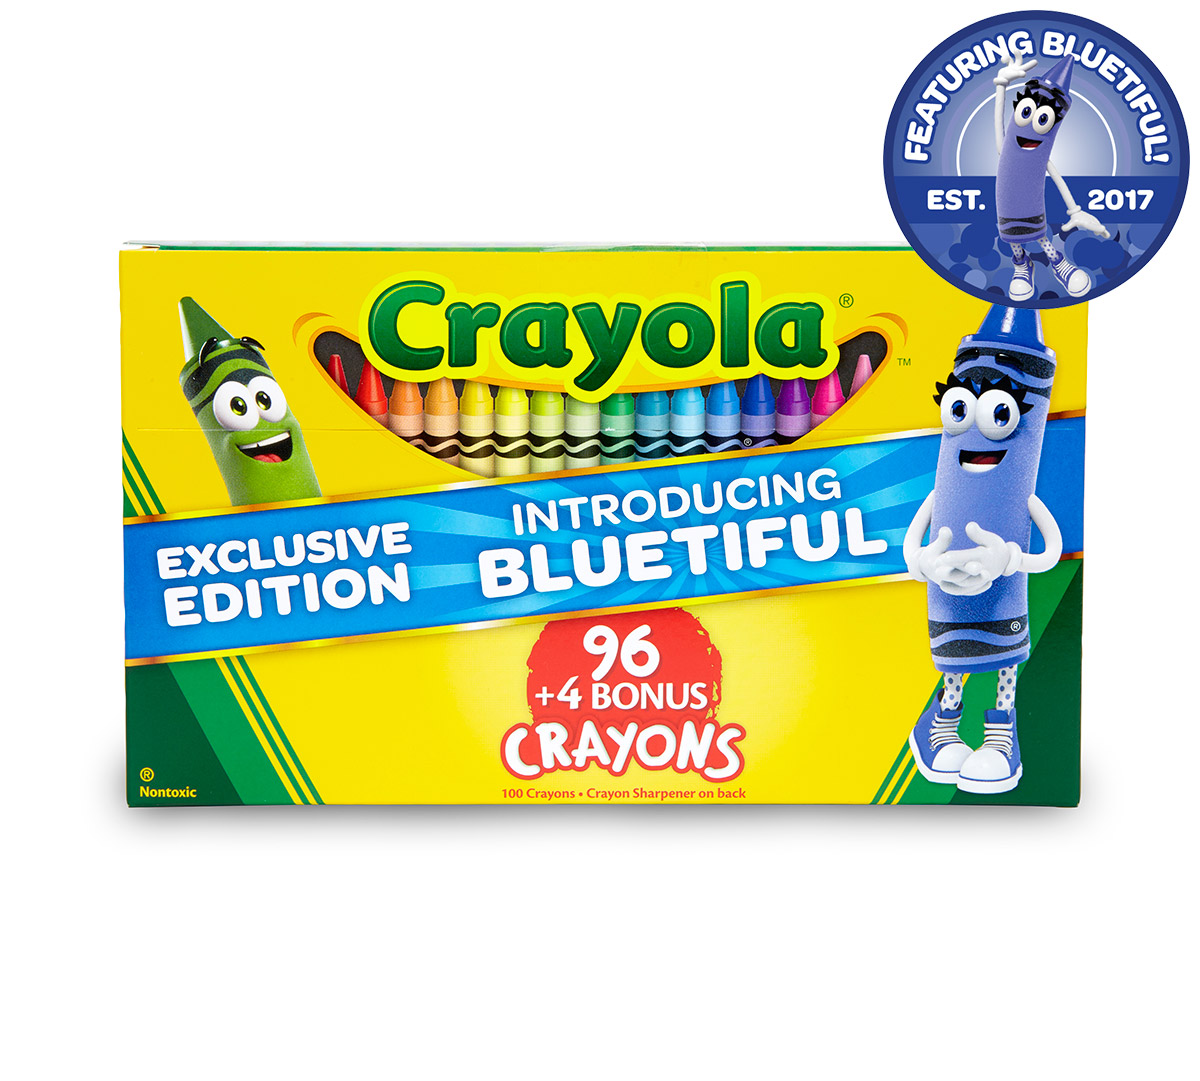 Bluetiful Crayola 96 Crayons with